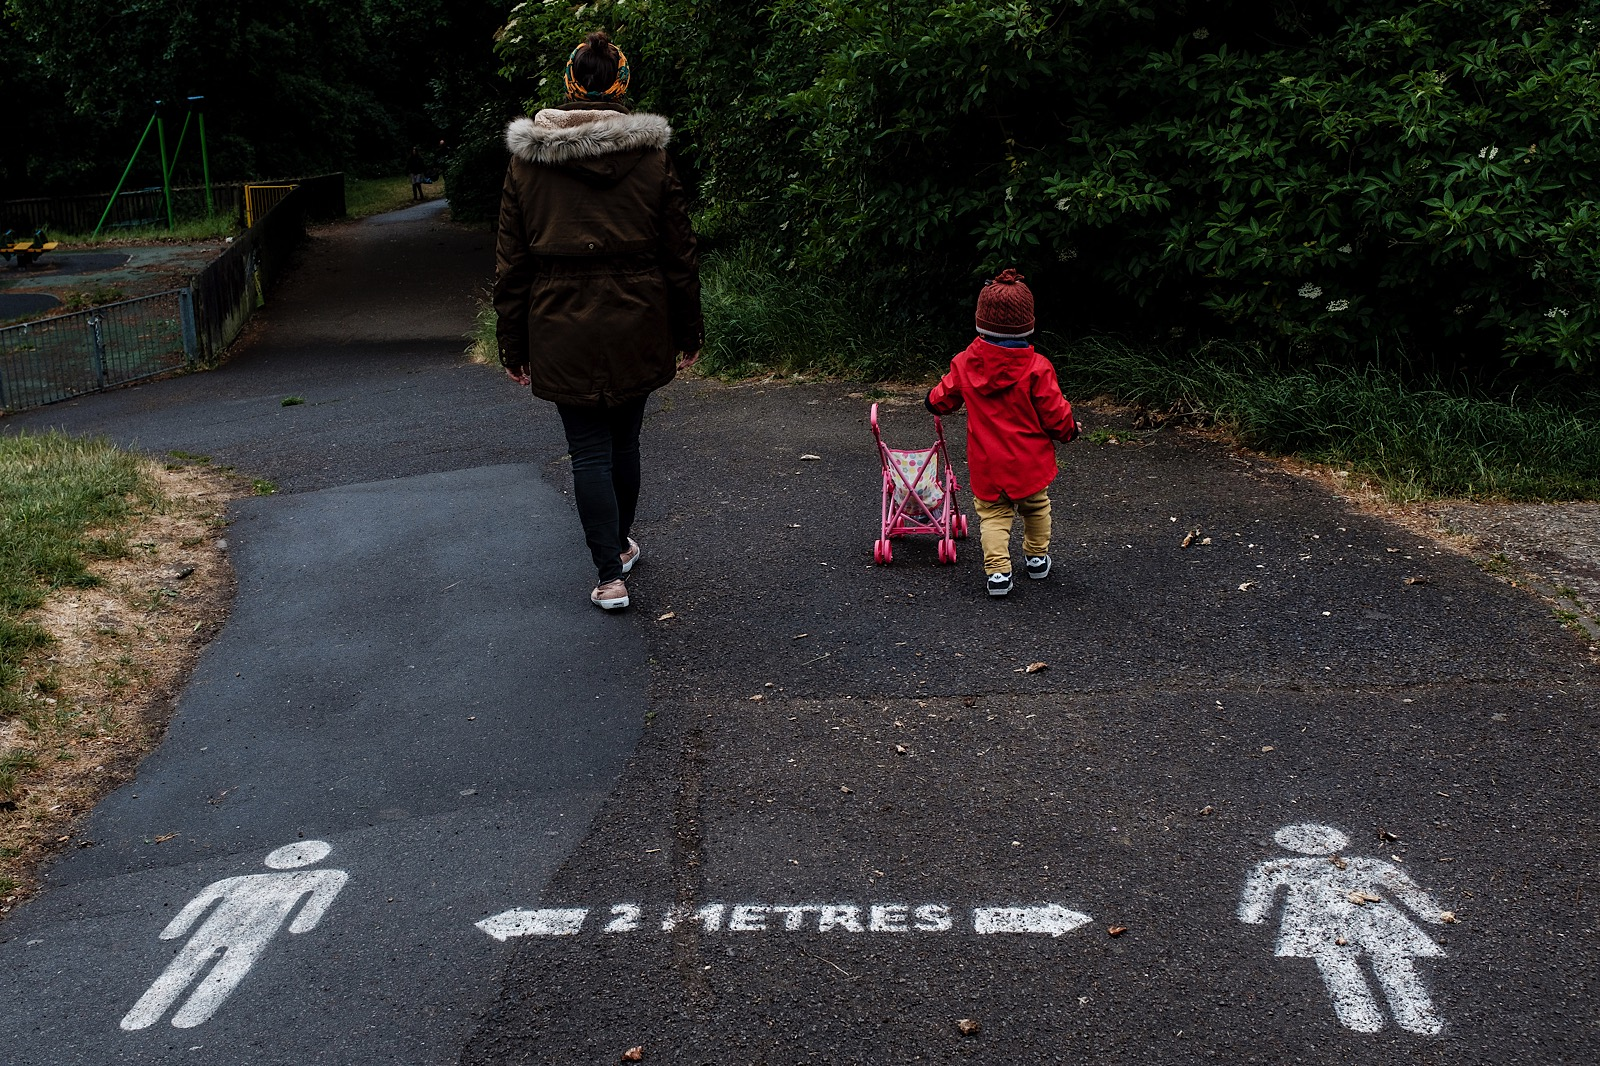 Mother and child walking down path with 2 meter apart sign spray-painted on path in foreground